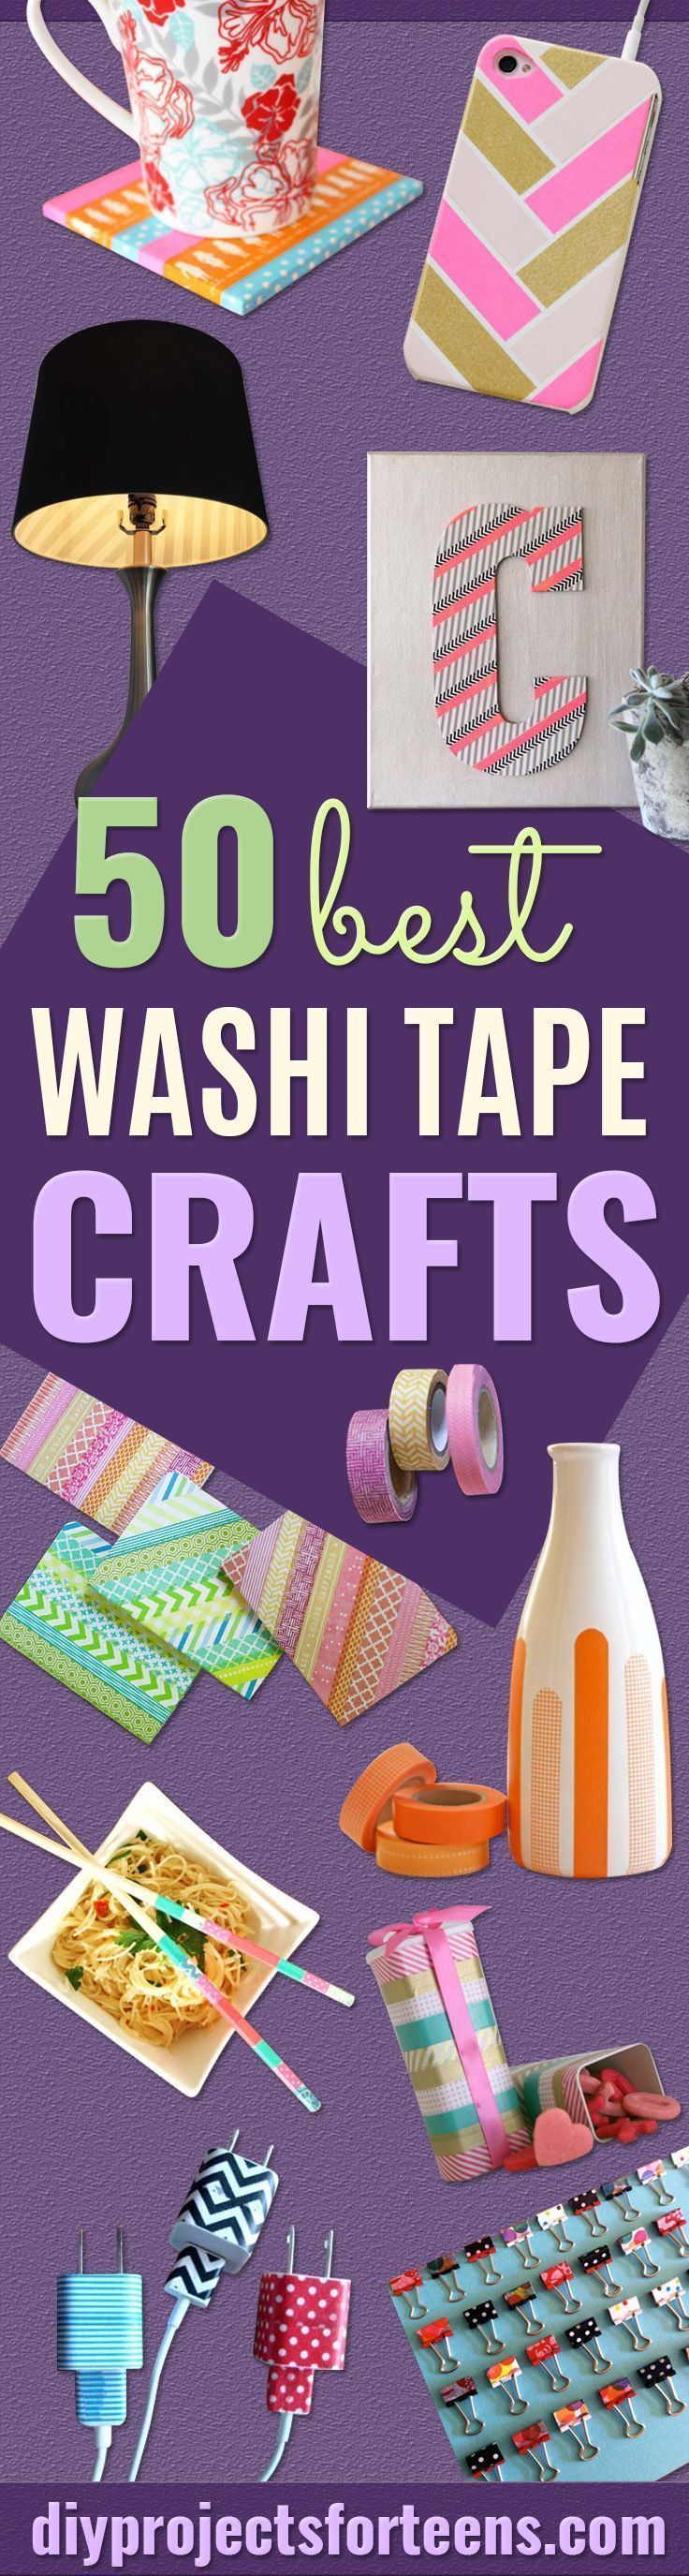 Washi Tape Crafts -  DIY Projects Made With Washi Tape - Wall Art, Frames, Cards, Pencils, Room Decor and DIY Gifts, Back To School Supplies - Creative, Fun Craft Ideas for Teens, Tweens and Teenagers - Step by Step Tutorials and Instructions http://diyprojectsforteens.com/washi-tape-ideas #diycraftsforteenstomake #ArtAndCraftStepByStep